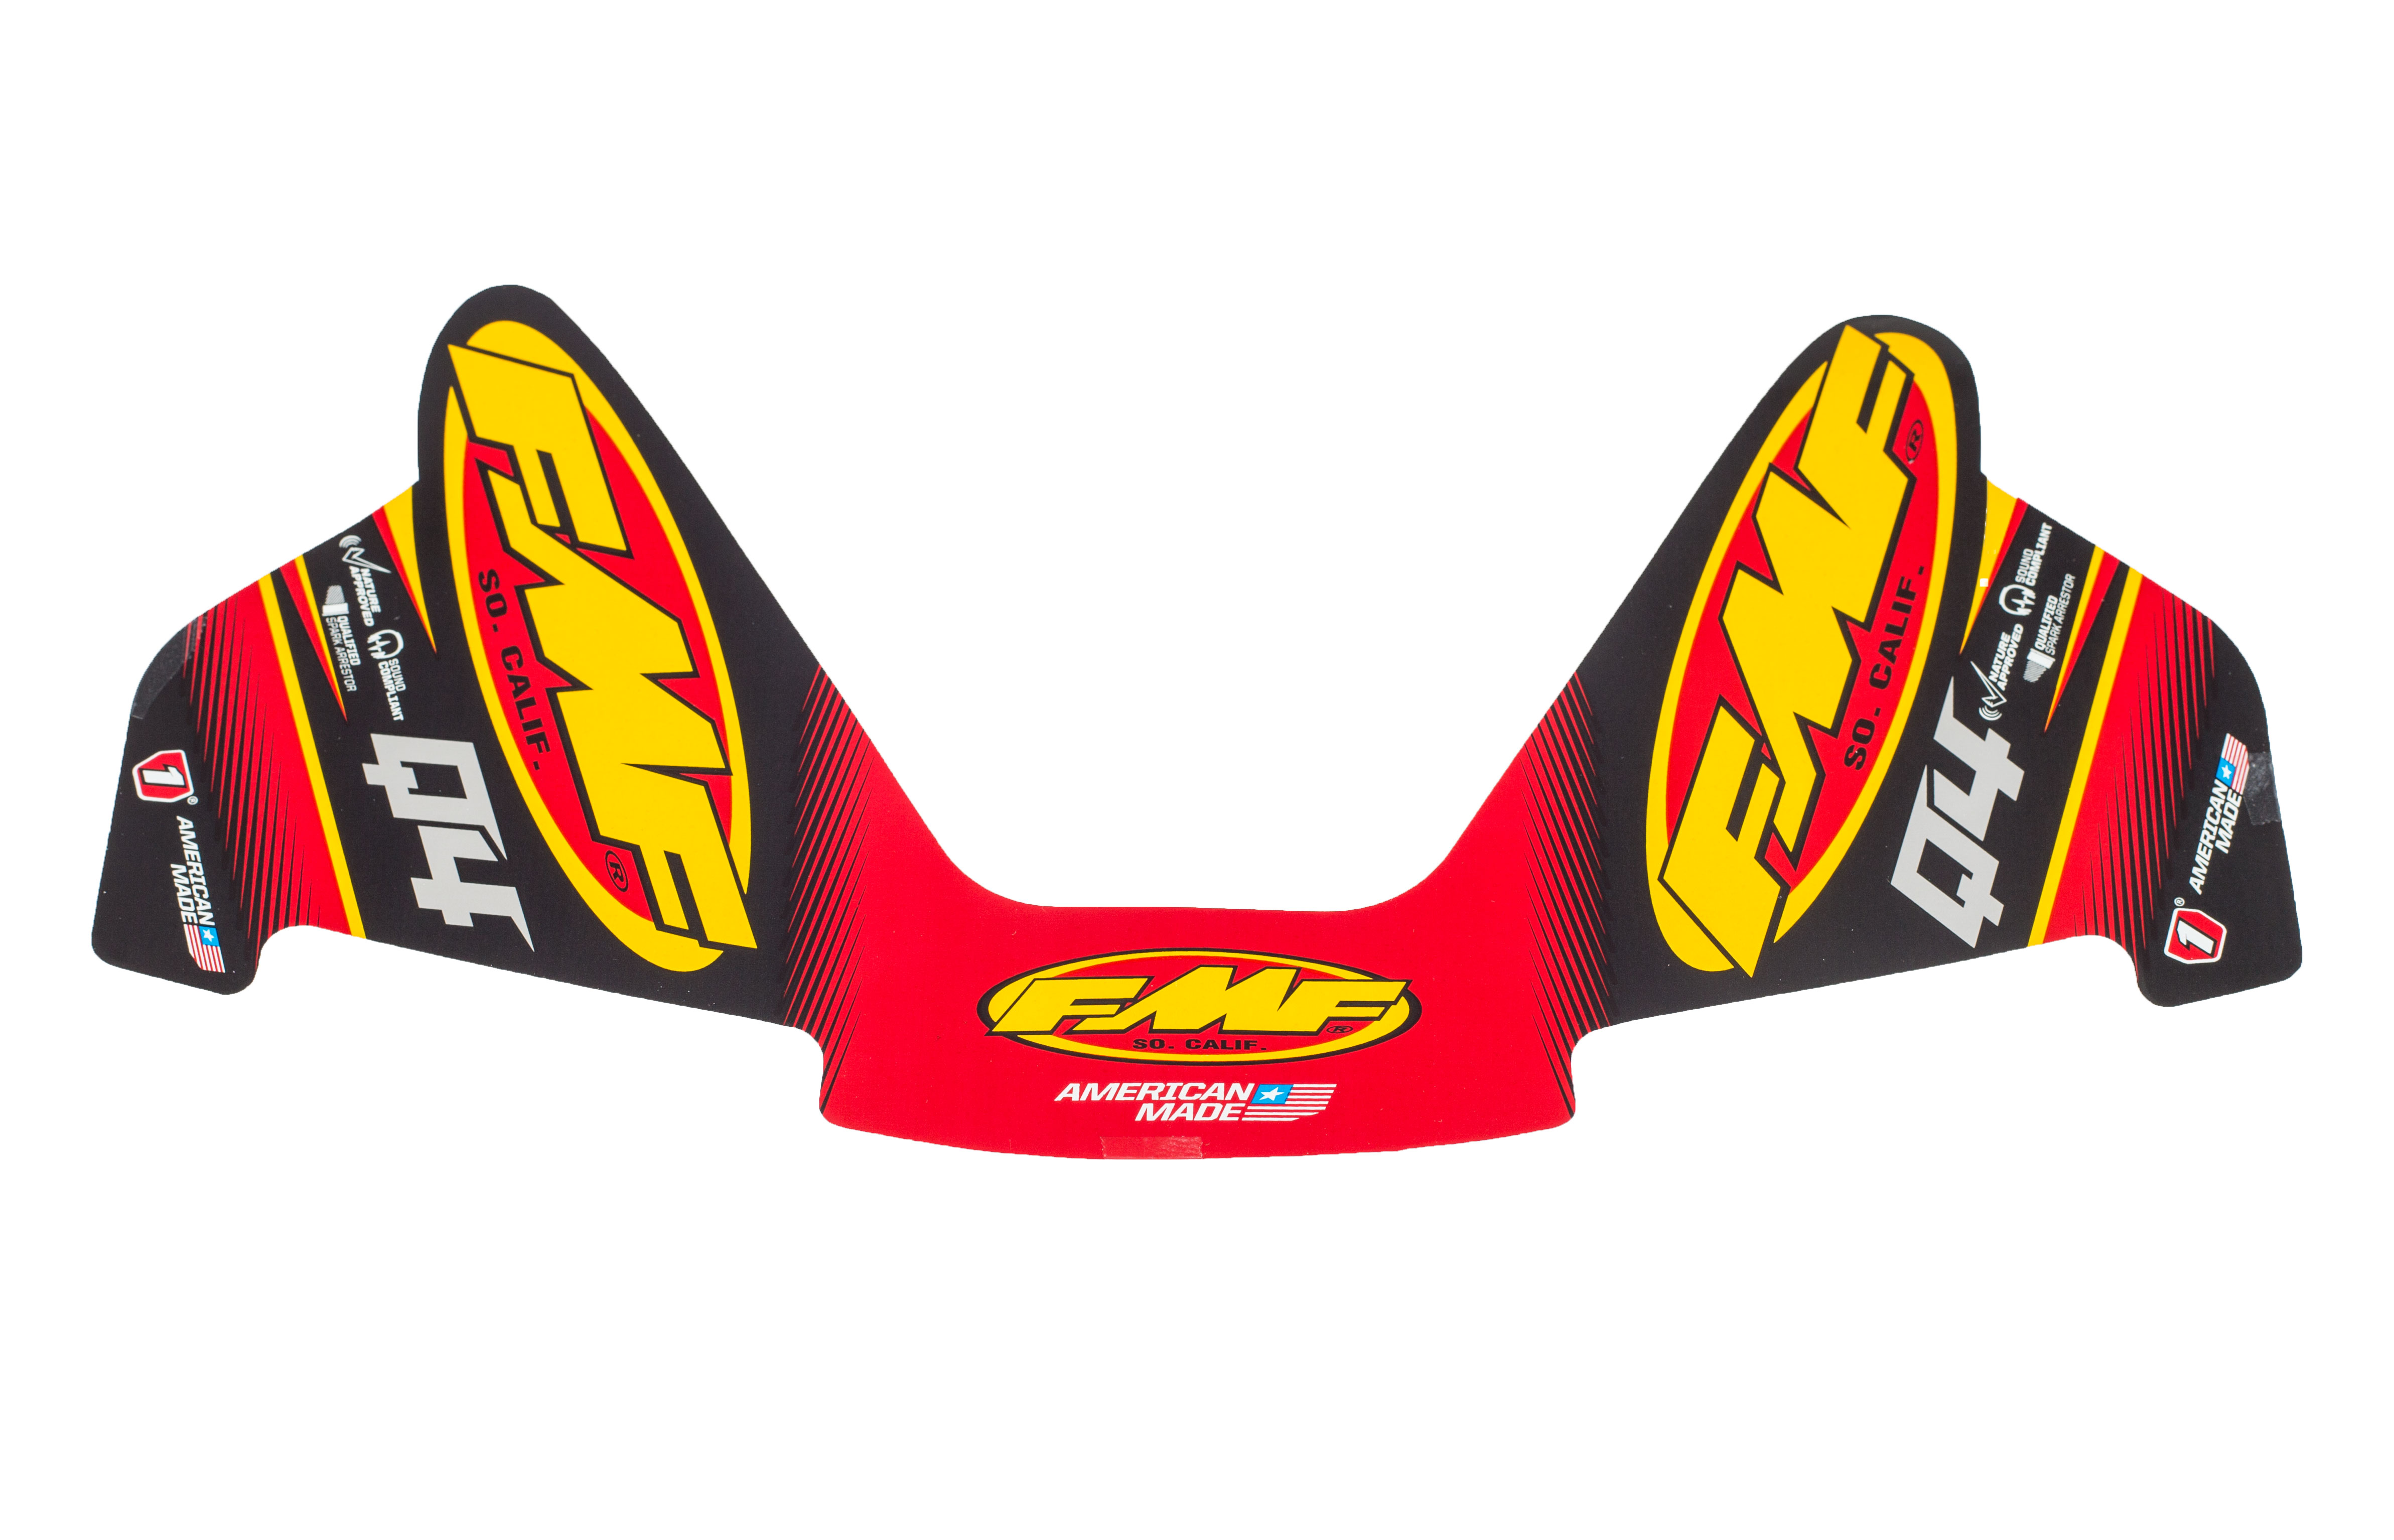 FMF Q4 2-PART WRAP LOGO DECAL REPLACEMENT